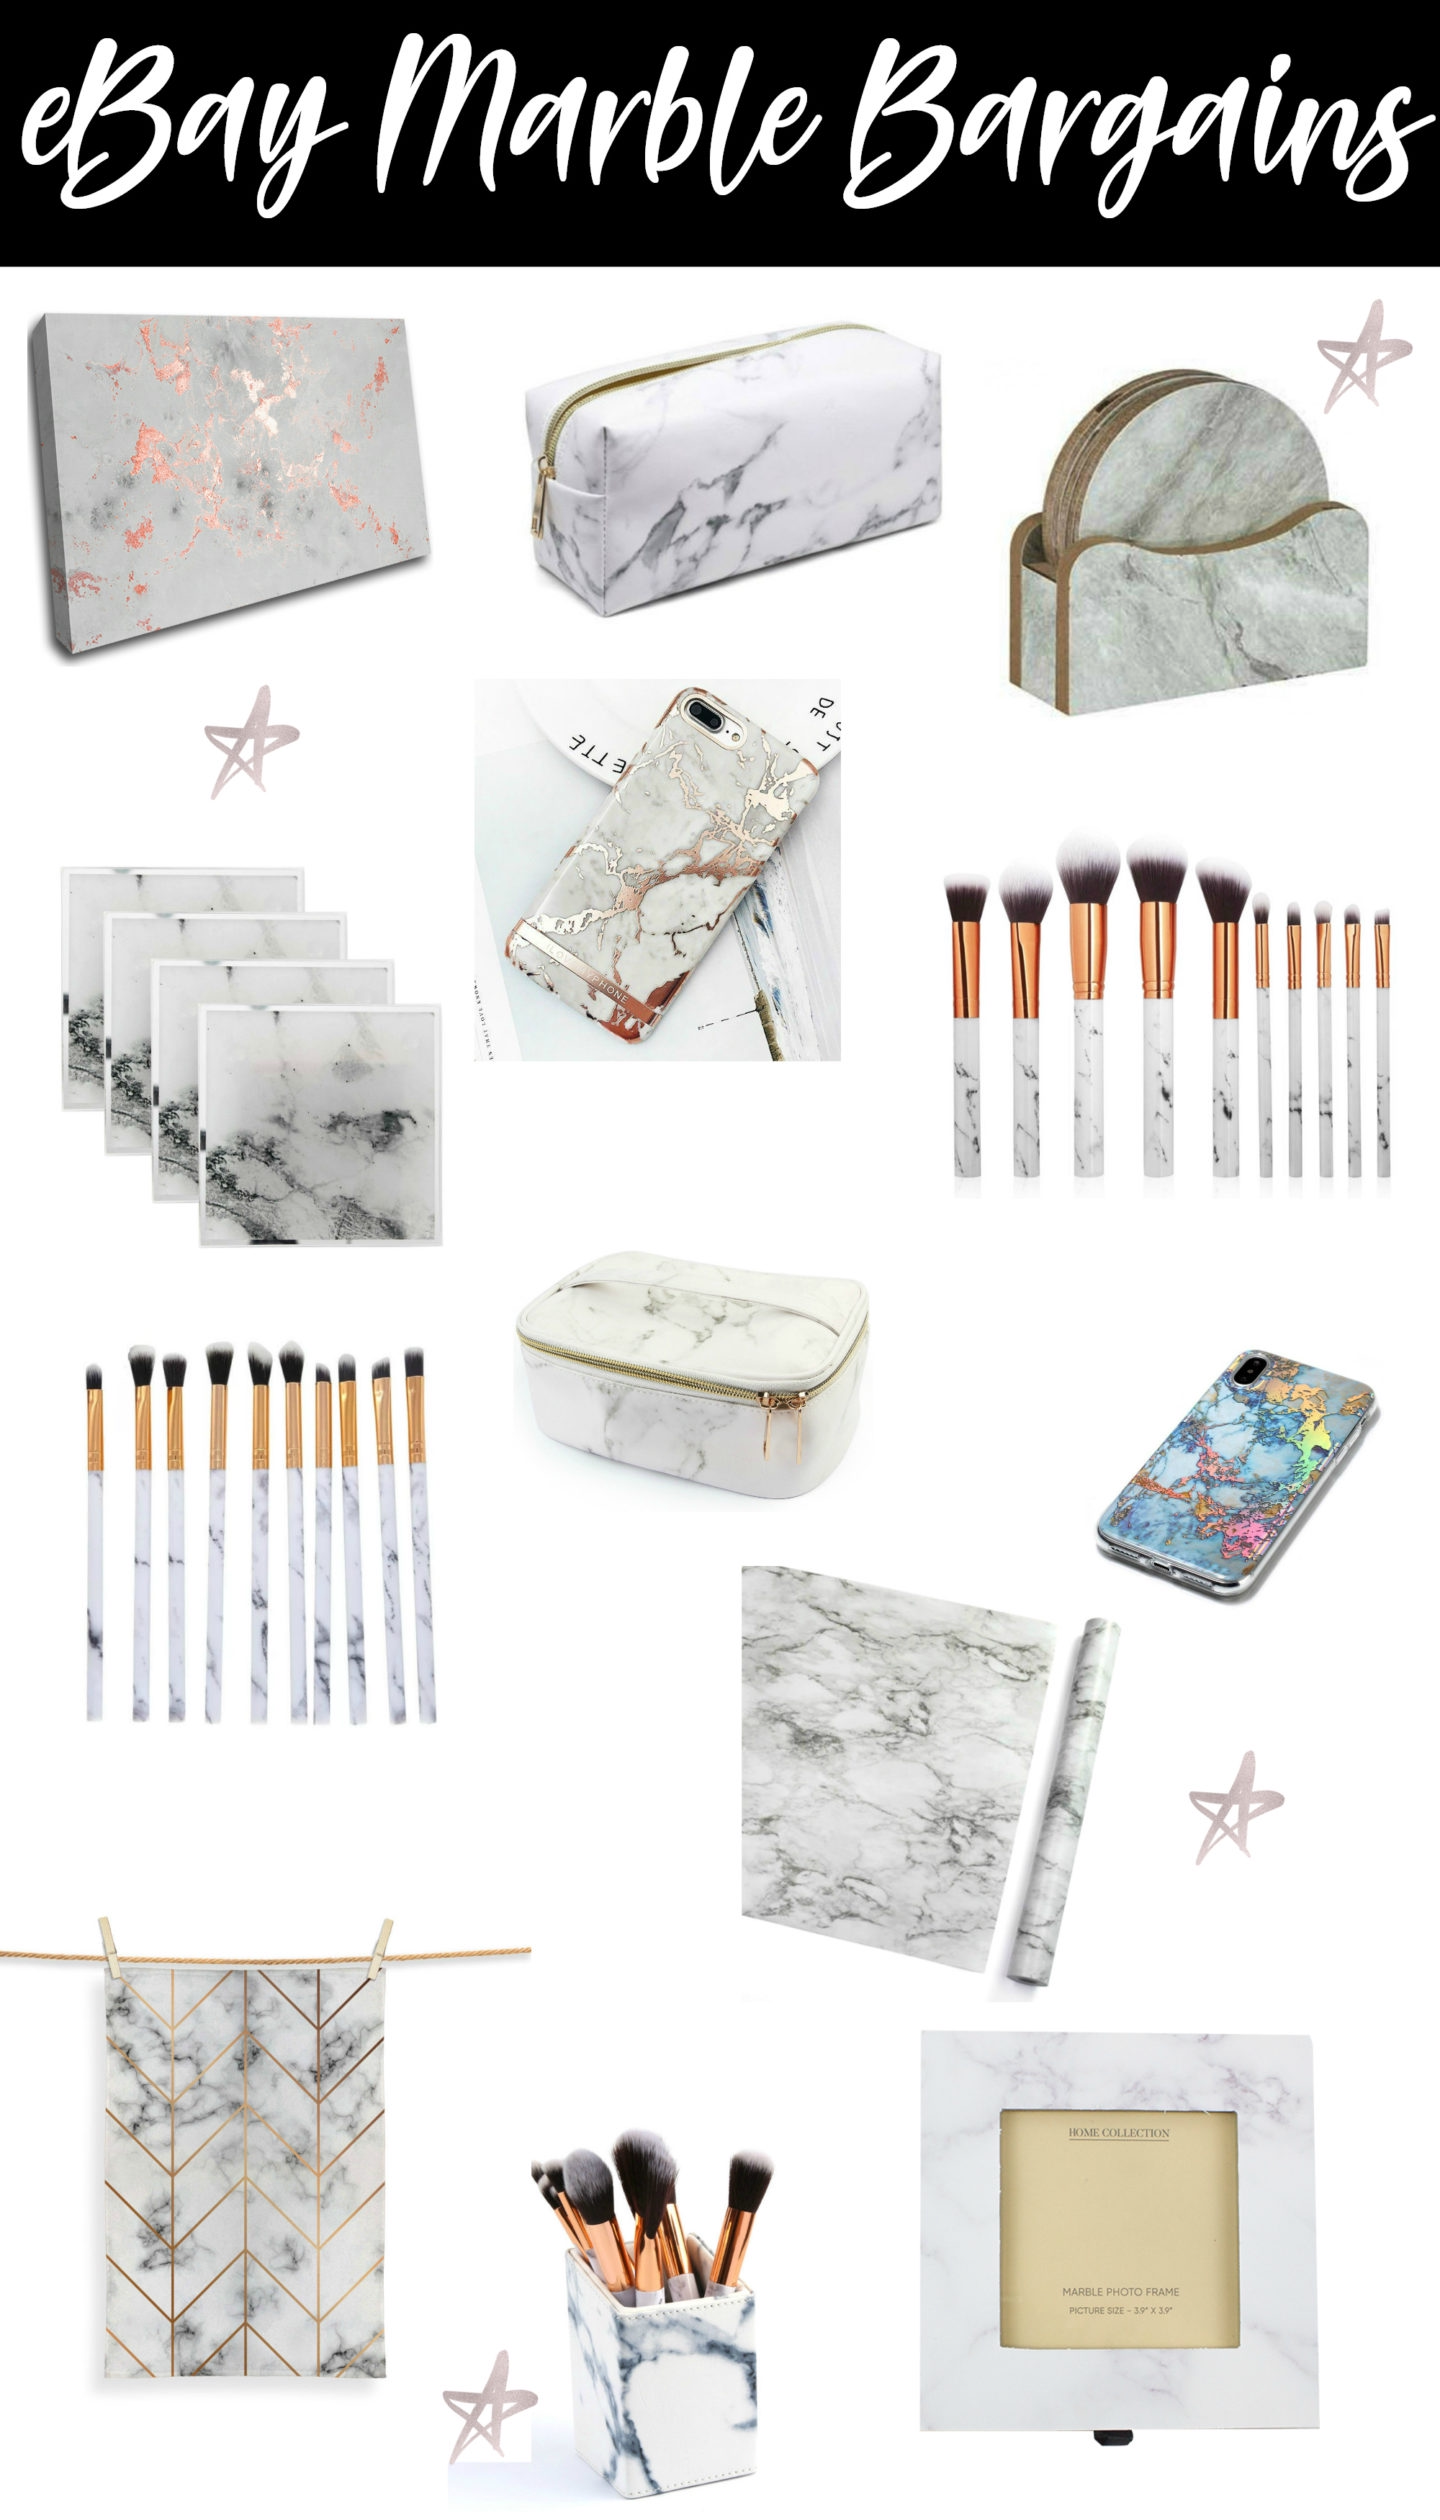 eBay Marble Bargains marble effect bargains all from